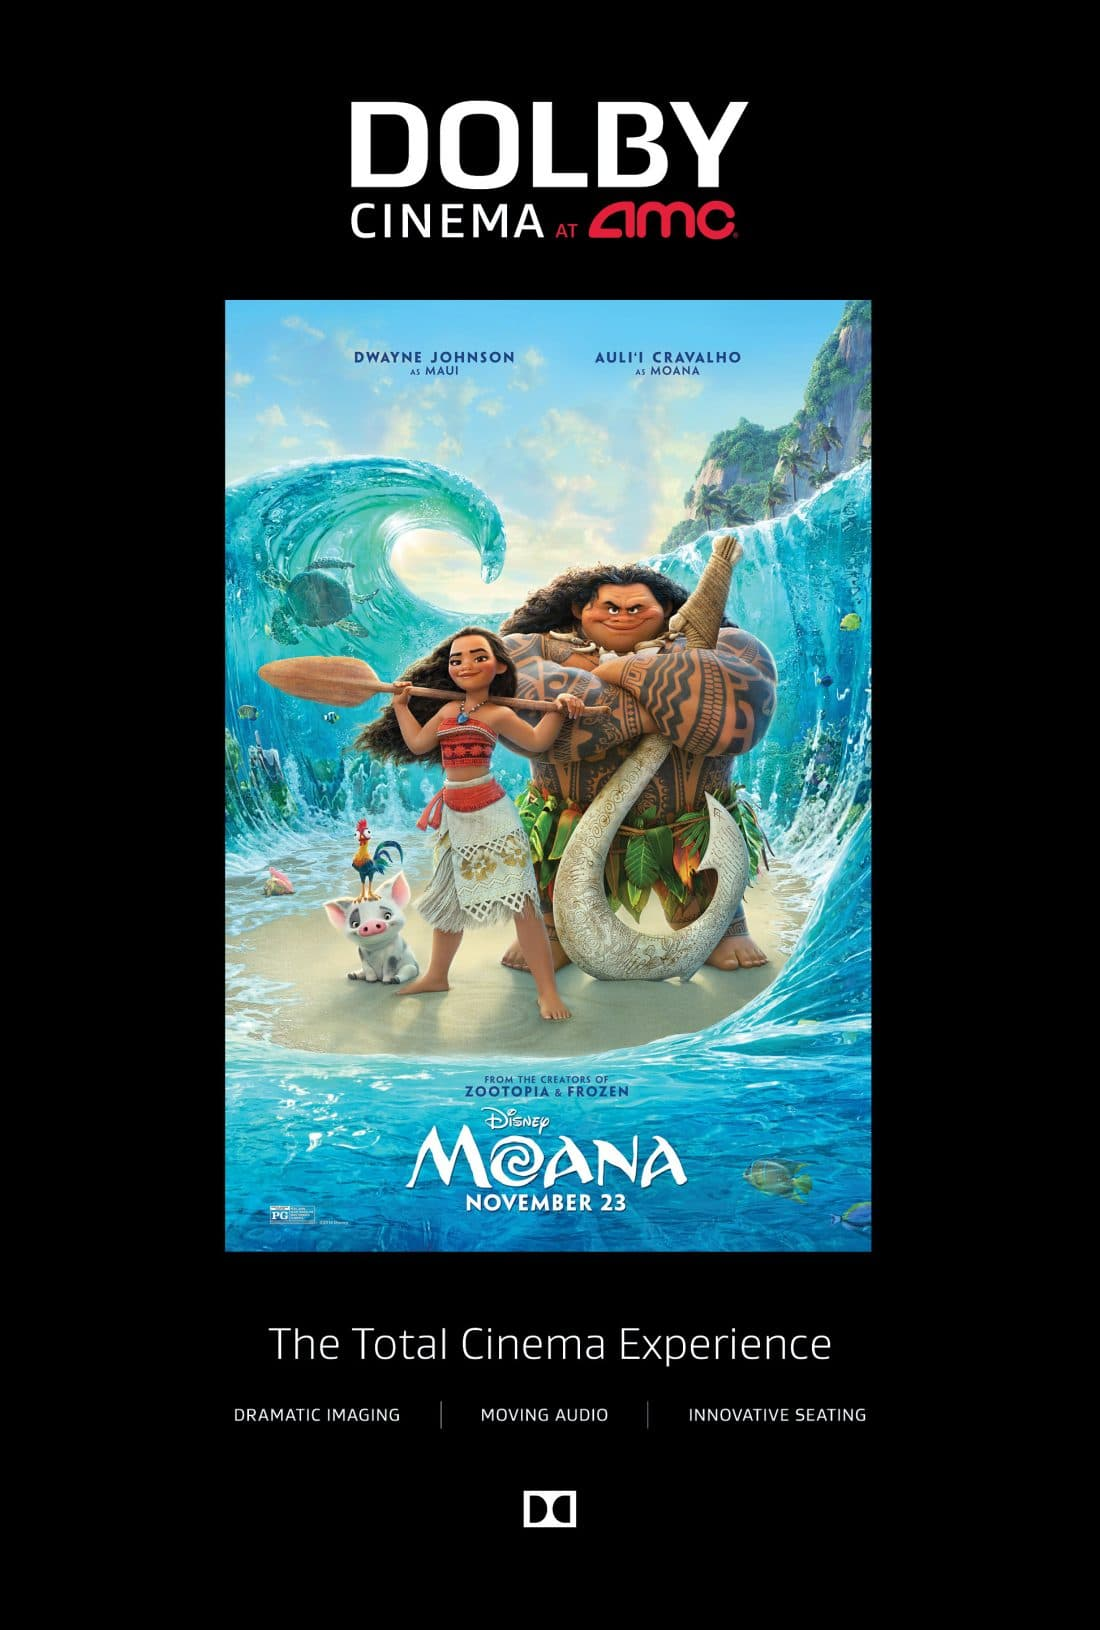 moana-dolby-cinema